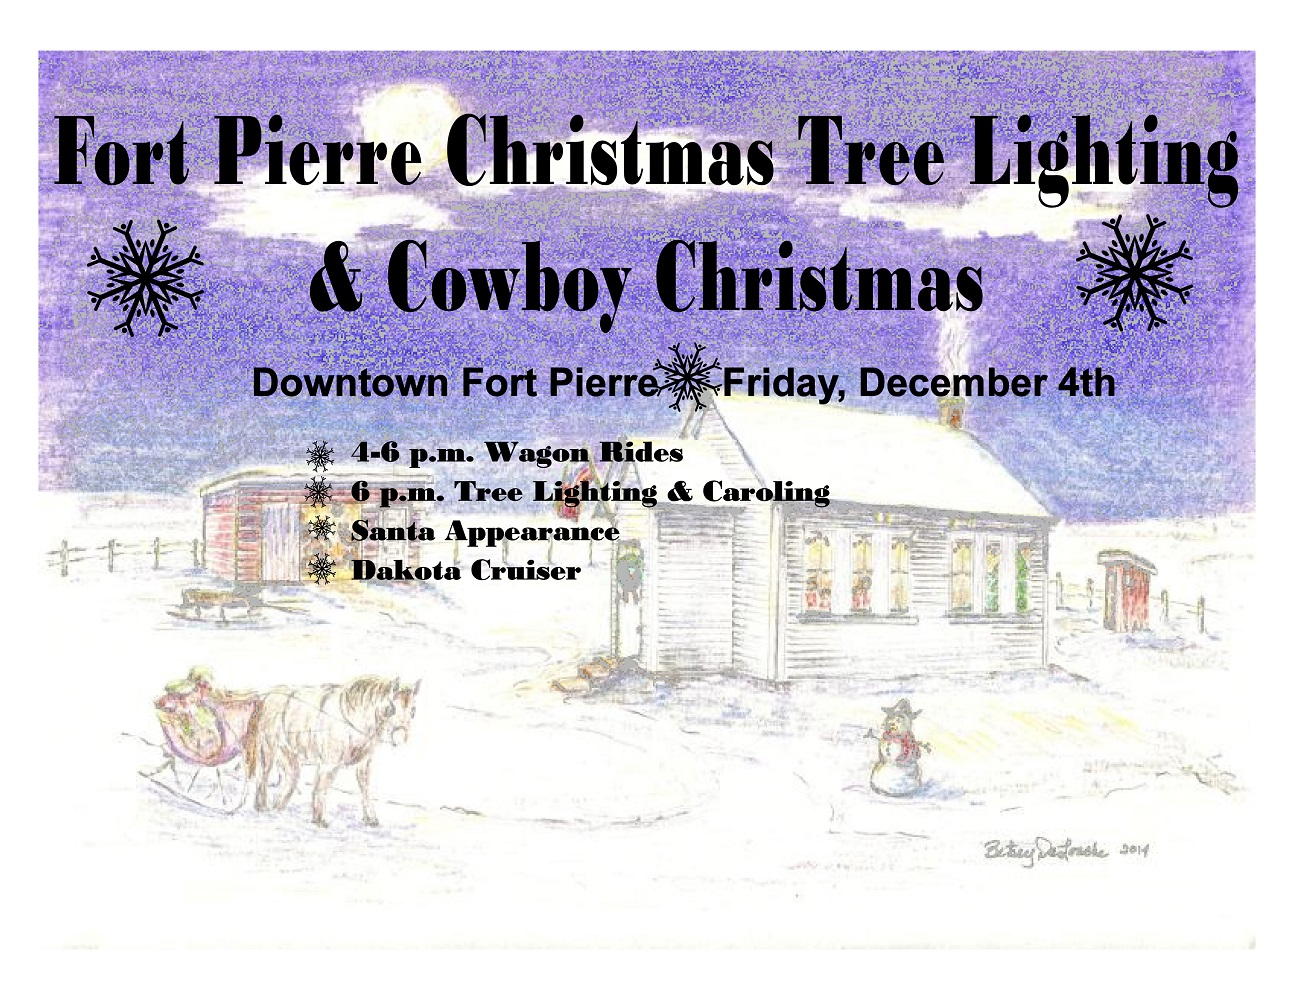 Fort Pierre Christmas Tree Lighting and Cowboy Christmas activities postponed to Dec. 4, 2020 ...